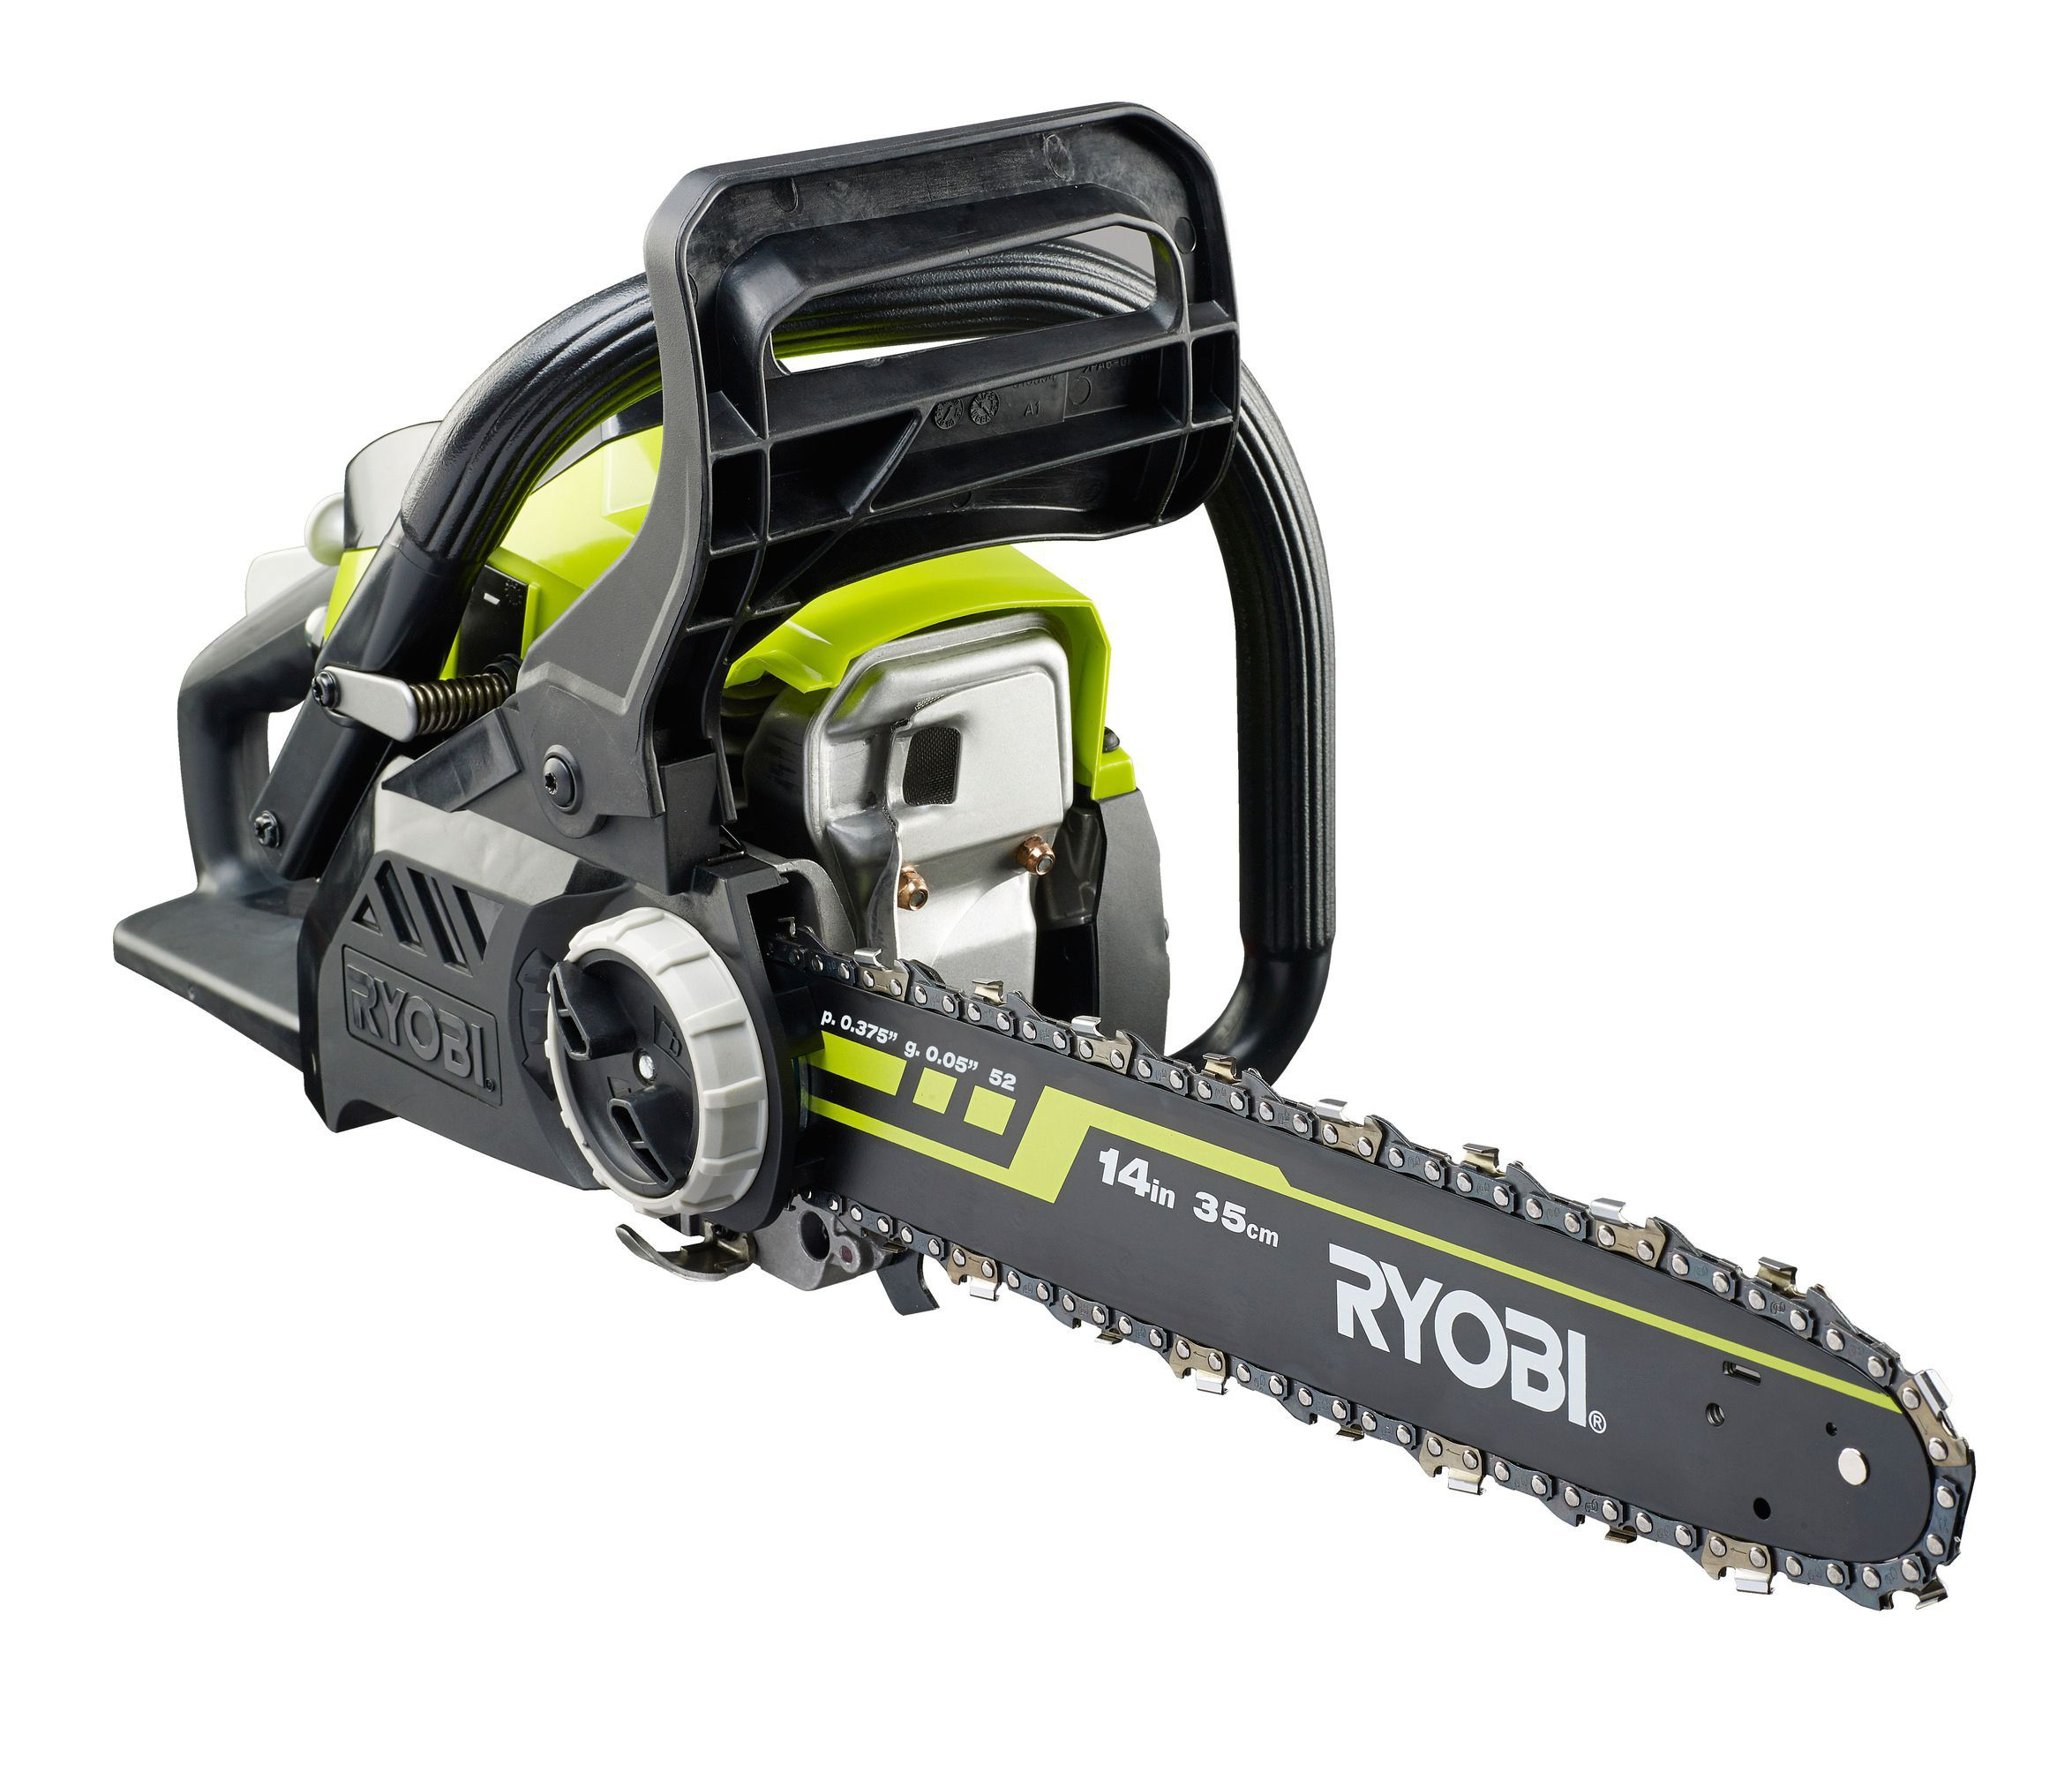 Ryobi rcs3835t 372 cc cordless petrol chainsaw departments diy ryobi rcs3835t 372 cc cordless petrol chainsaw departments diy at bq keyboard keysfo Choice Image